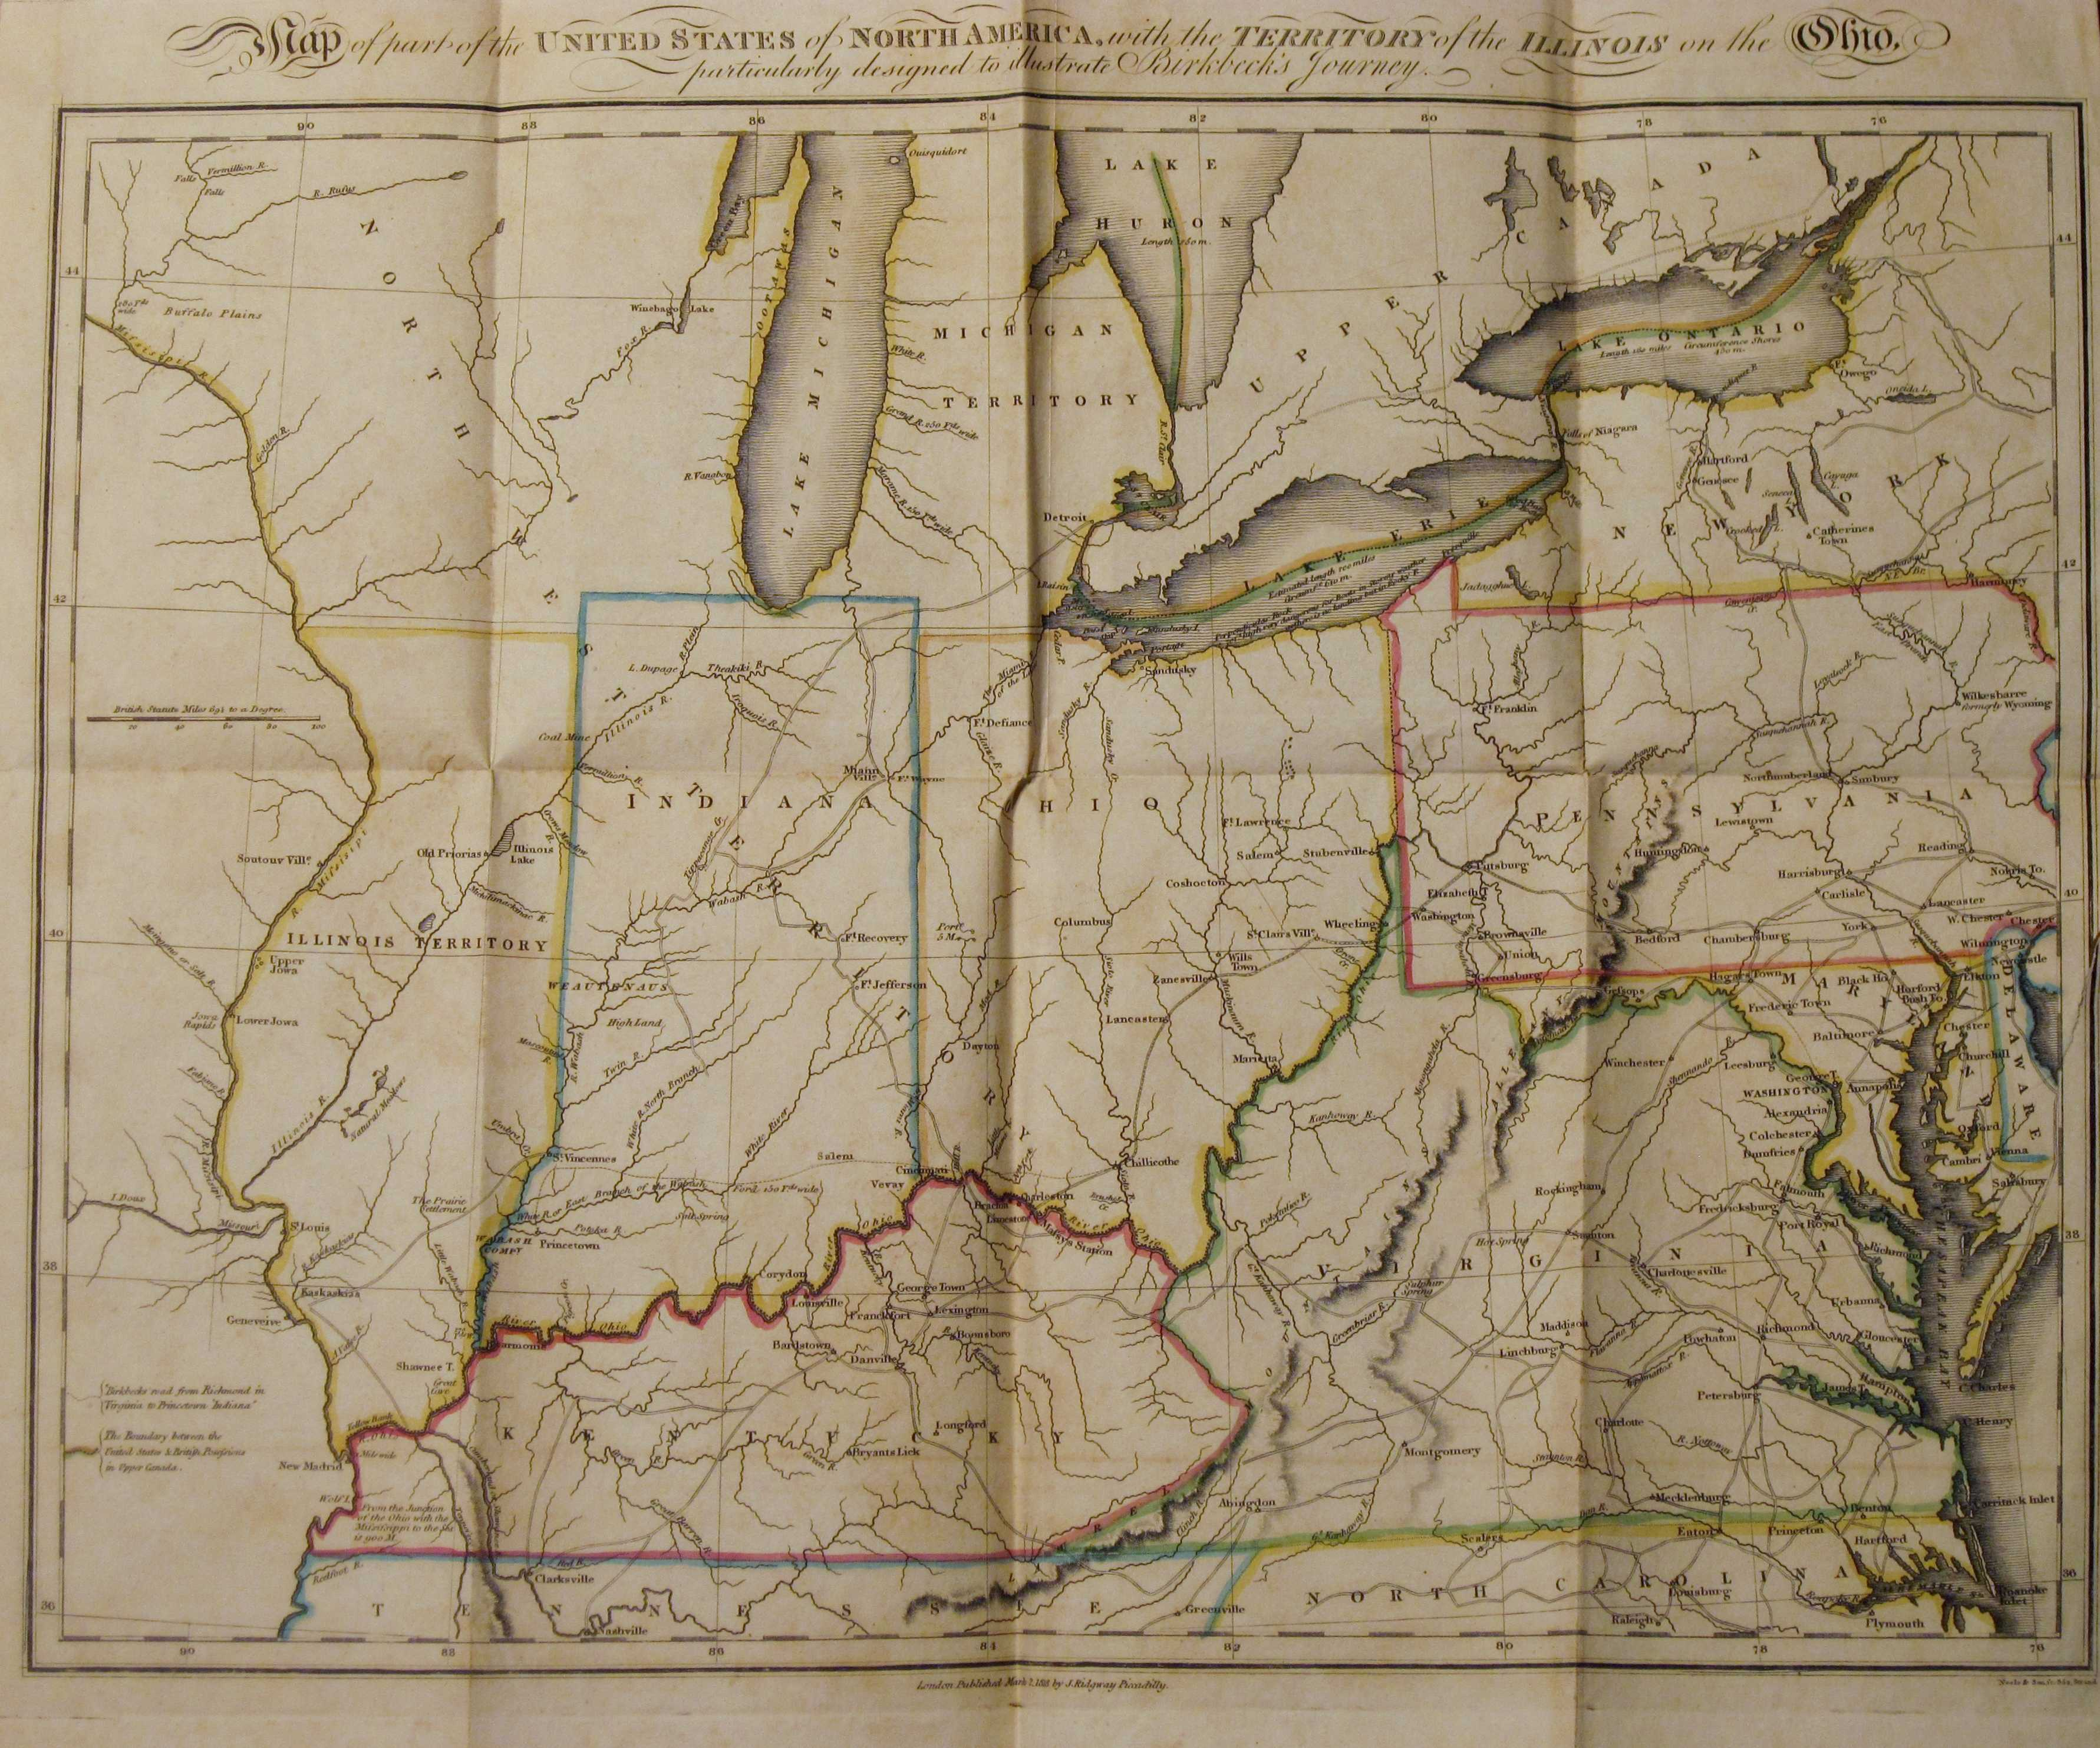 18183 MAP OF PARTS OF THE UNITED